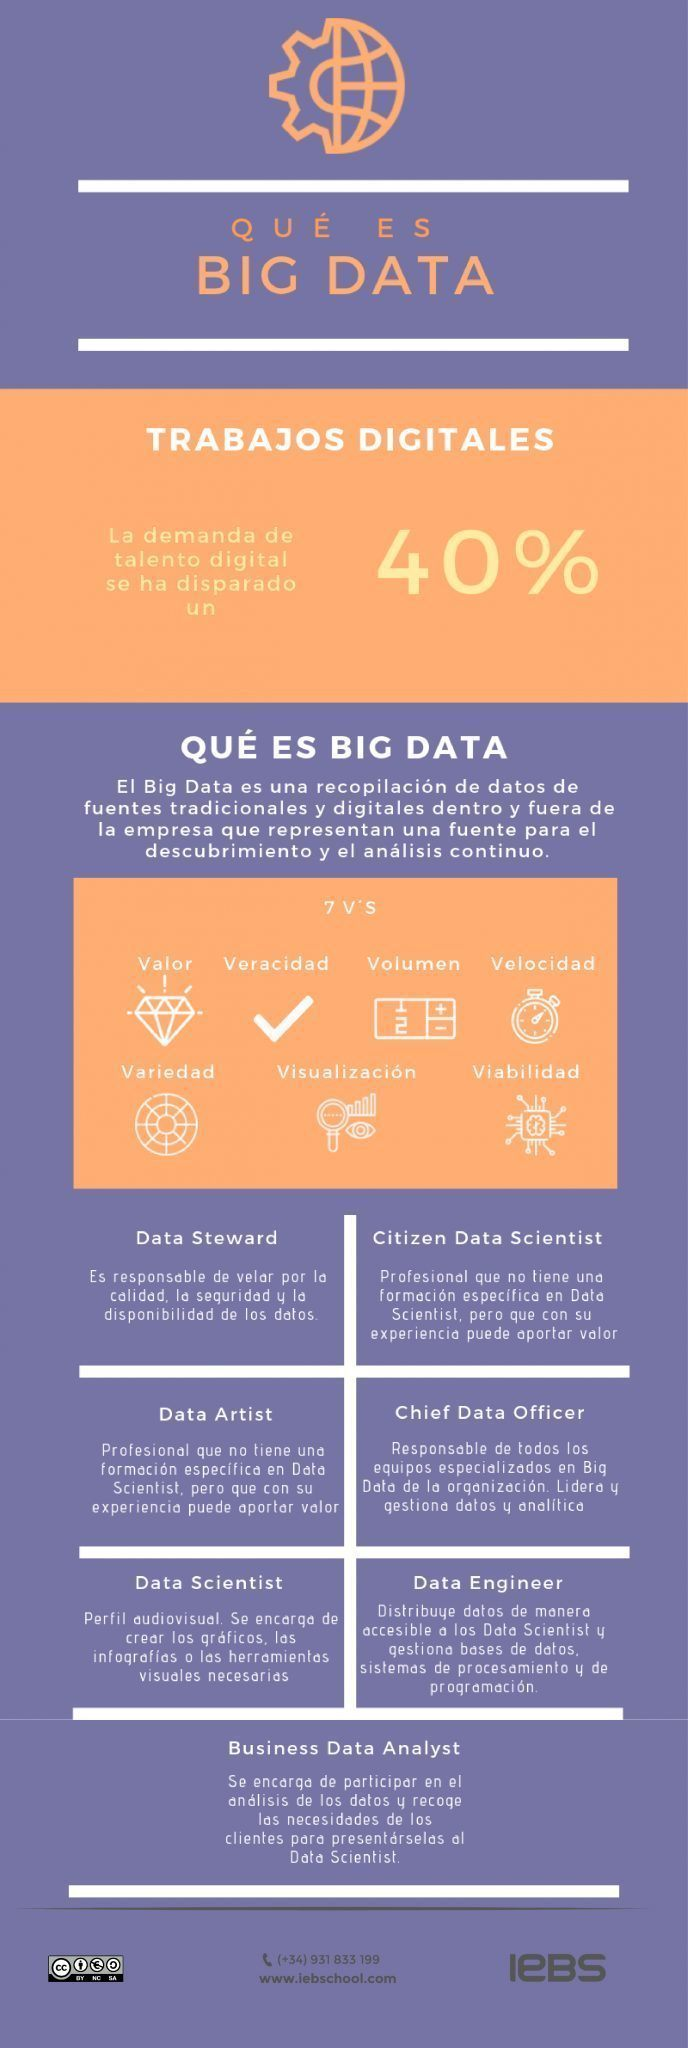 El valor del Big Data en la era digital: qué es, origen y caso de éxito - R079 que es big data